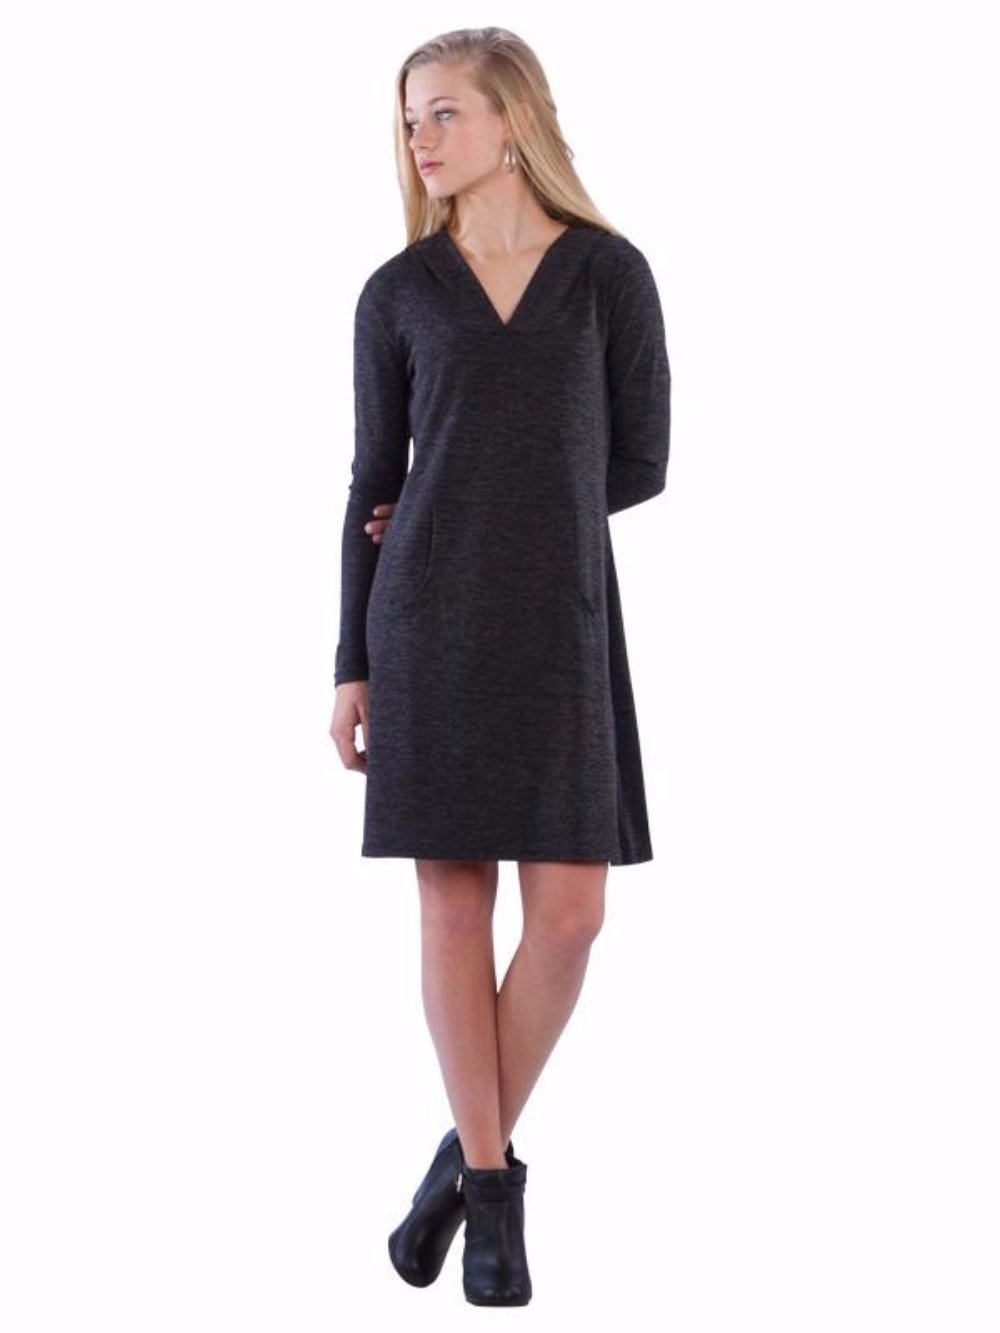 Hoodie Sweater Dress with Kangaroo Pocket and V-Neck - Charcoal Sweater Dress